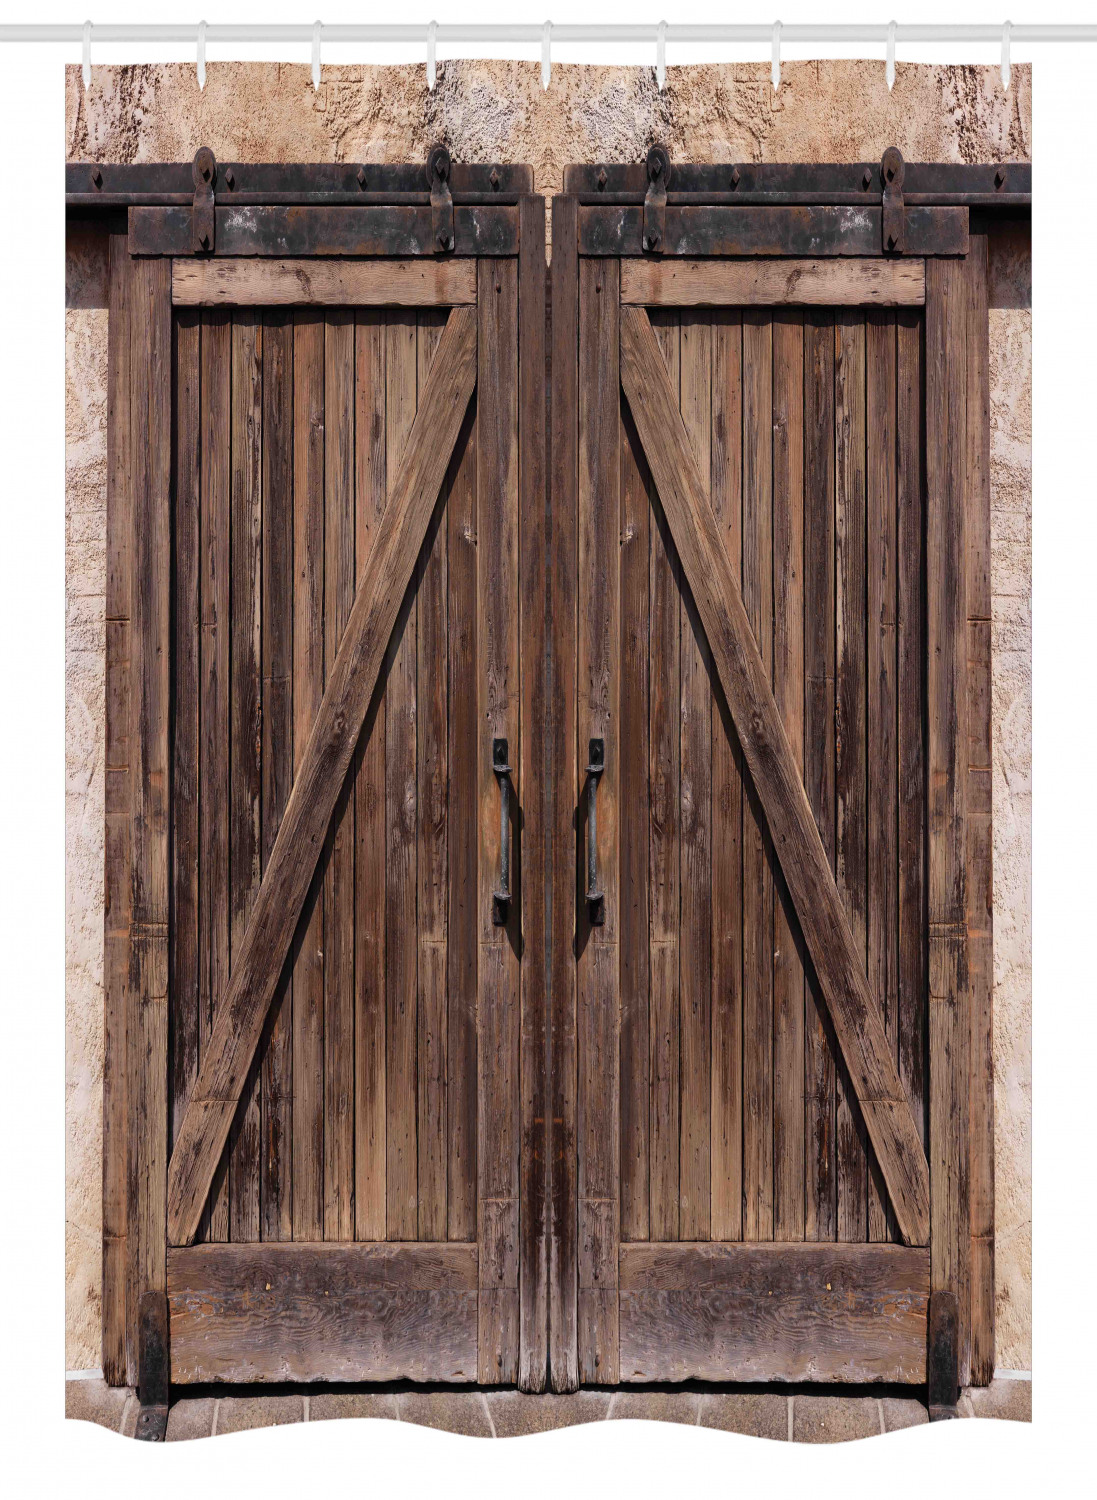 rustic stall shower curtain wooden barn door in stone farmhouse image vintage desgin rural art architecture print fabric bathroom set with hooks